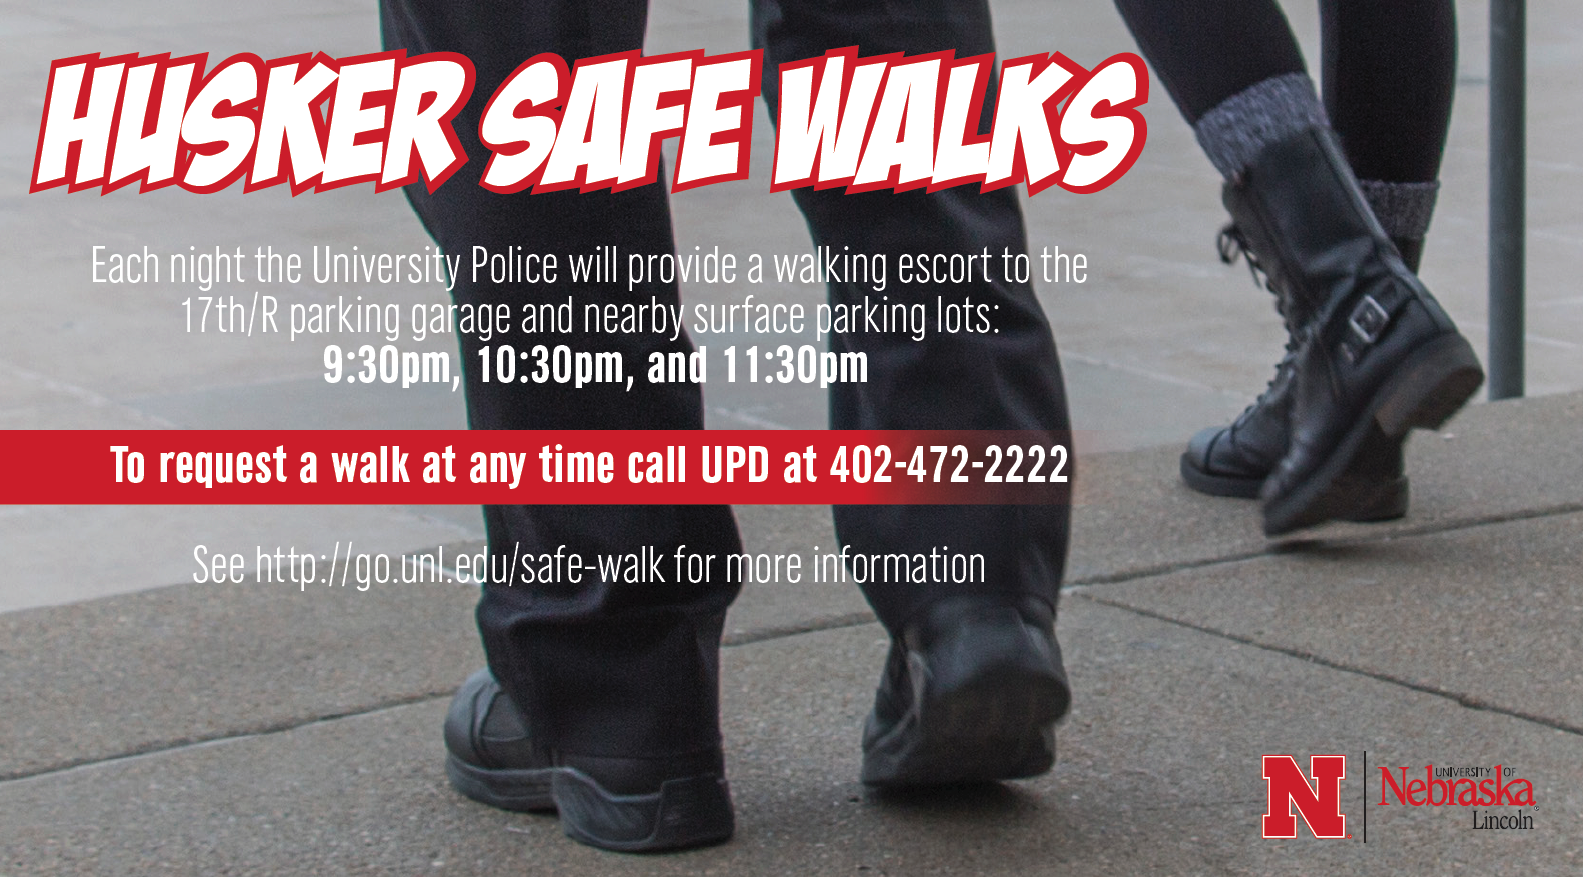 Husker Safe Walks are available to keep students safe.